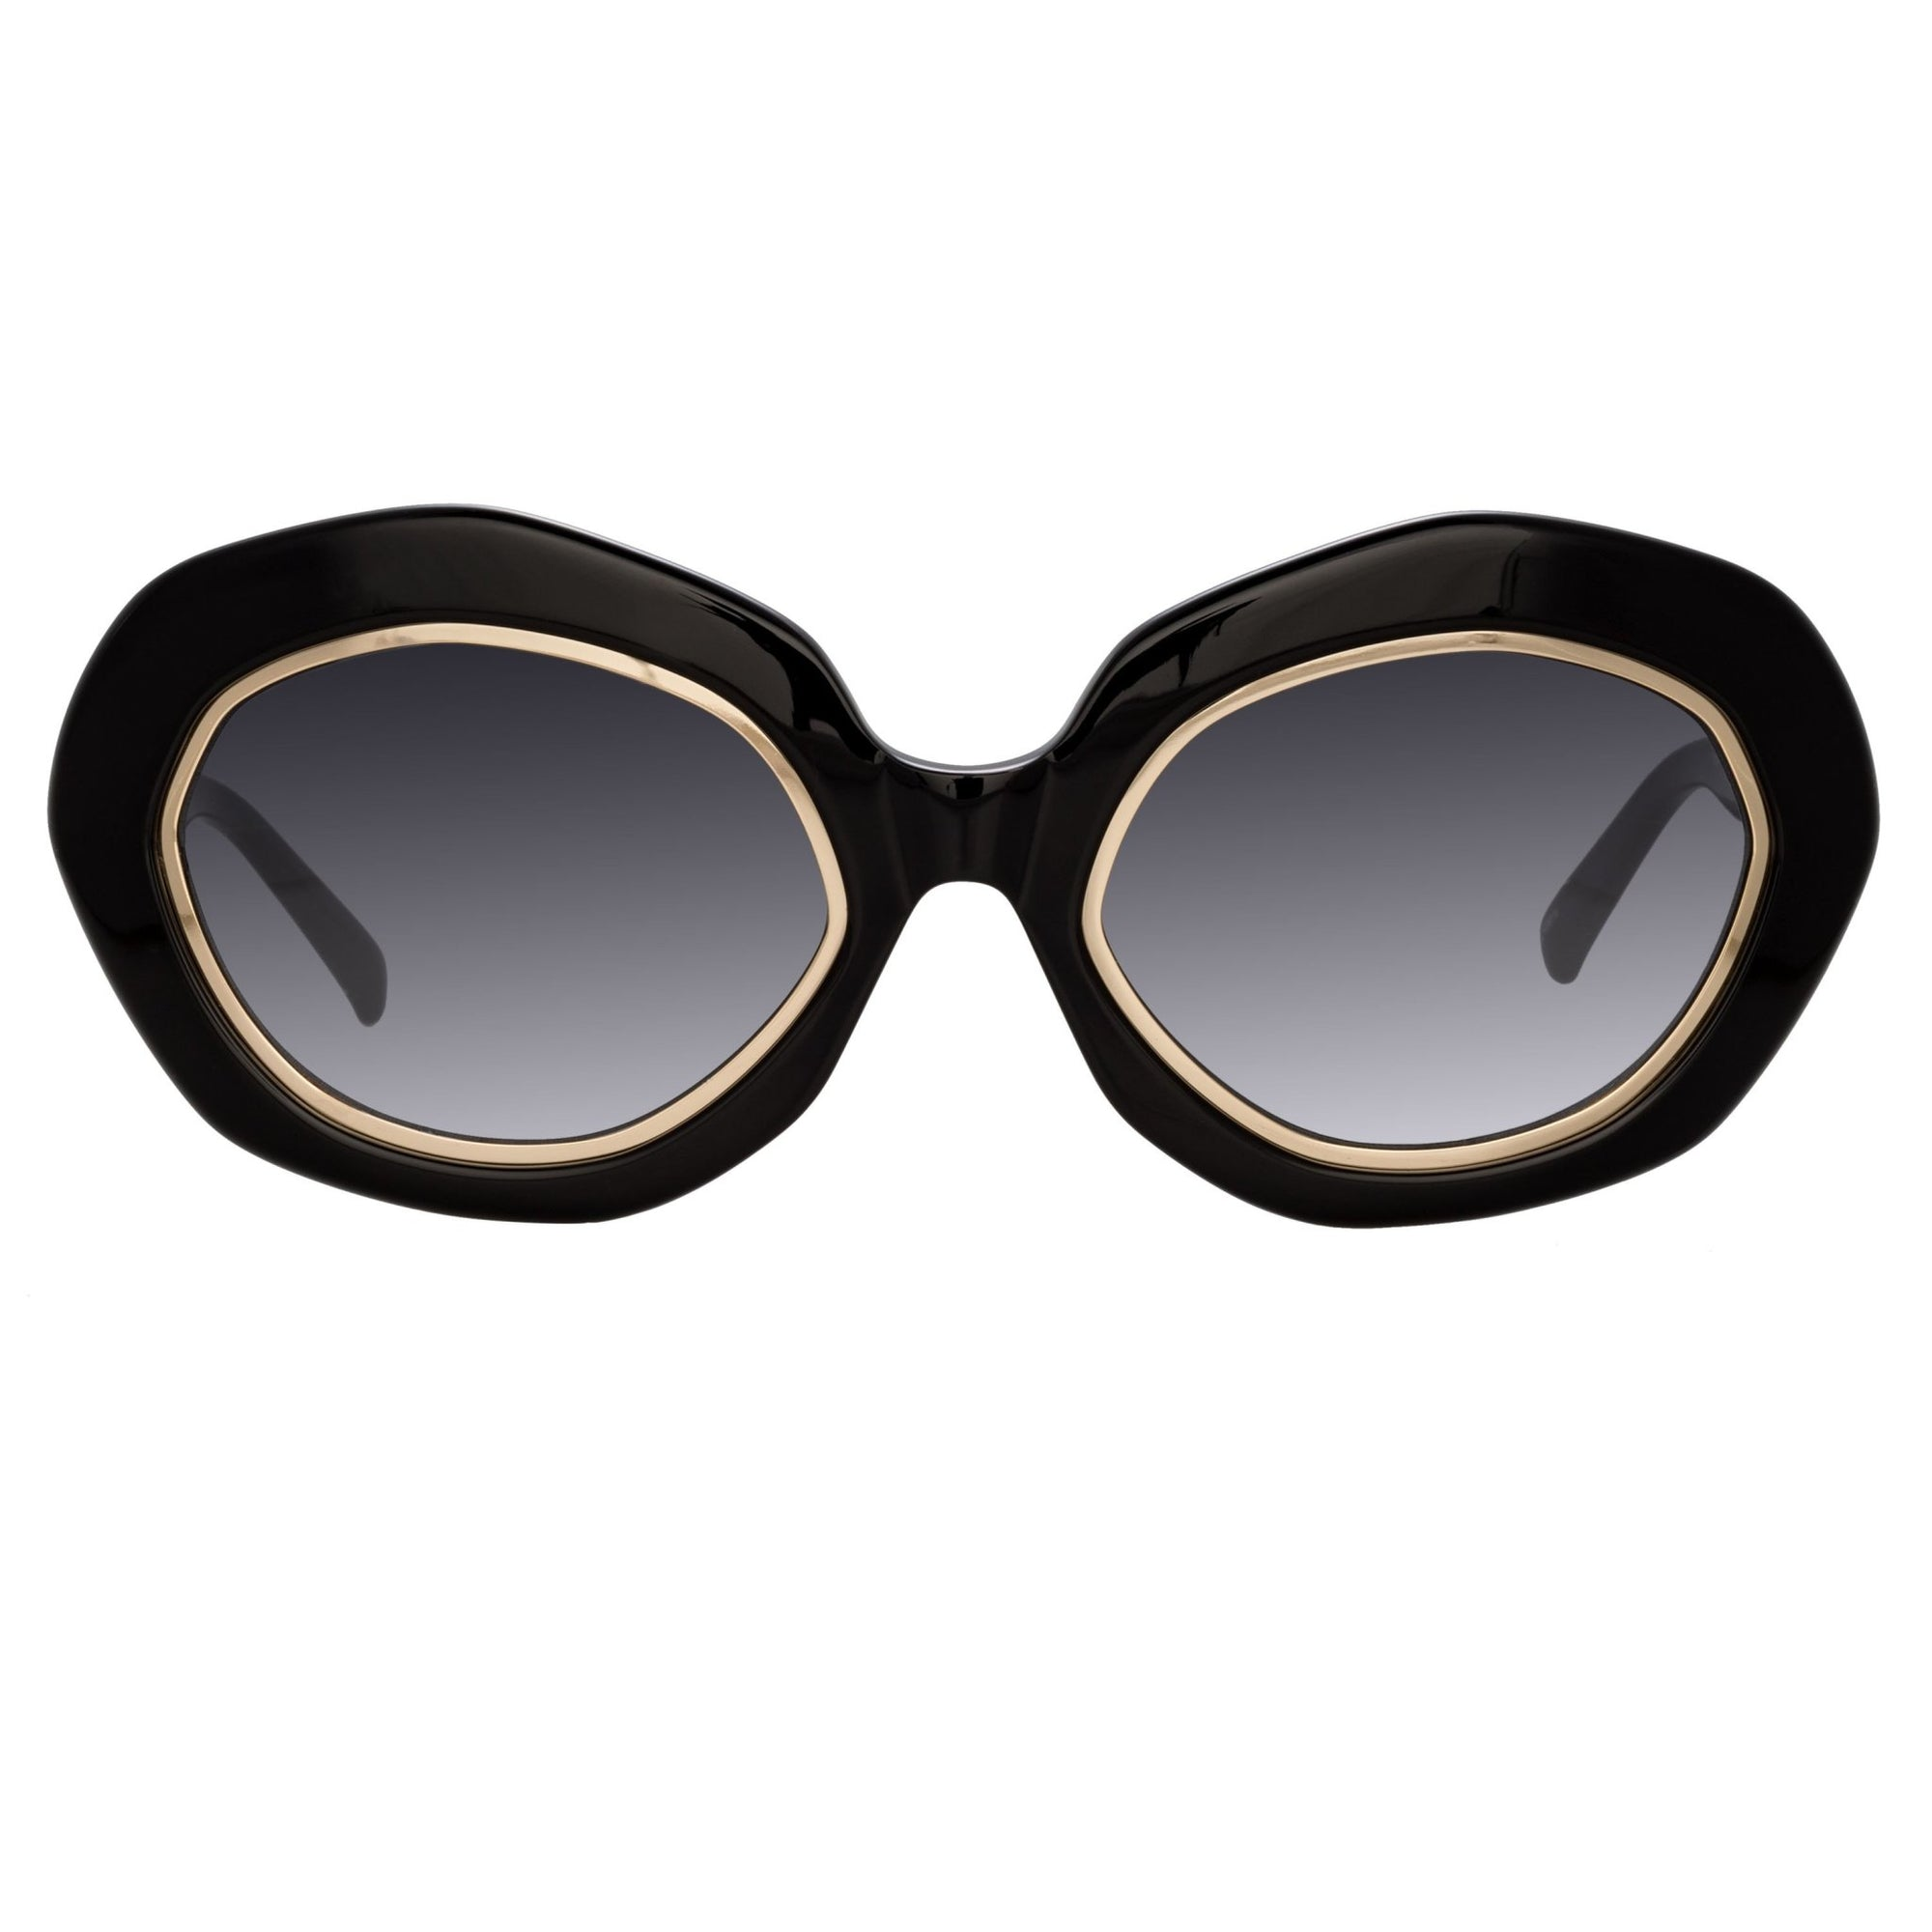 Erdem Women Sunglasses Oversized Black Gold with Grey Graduated Lenses EDM33C3SUN - Watches & Crystals